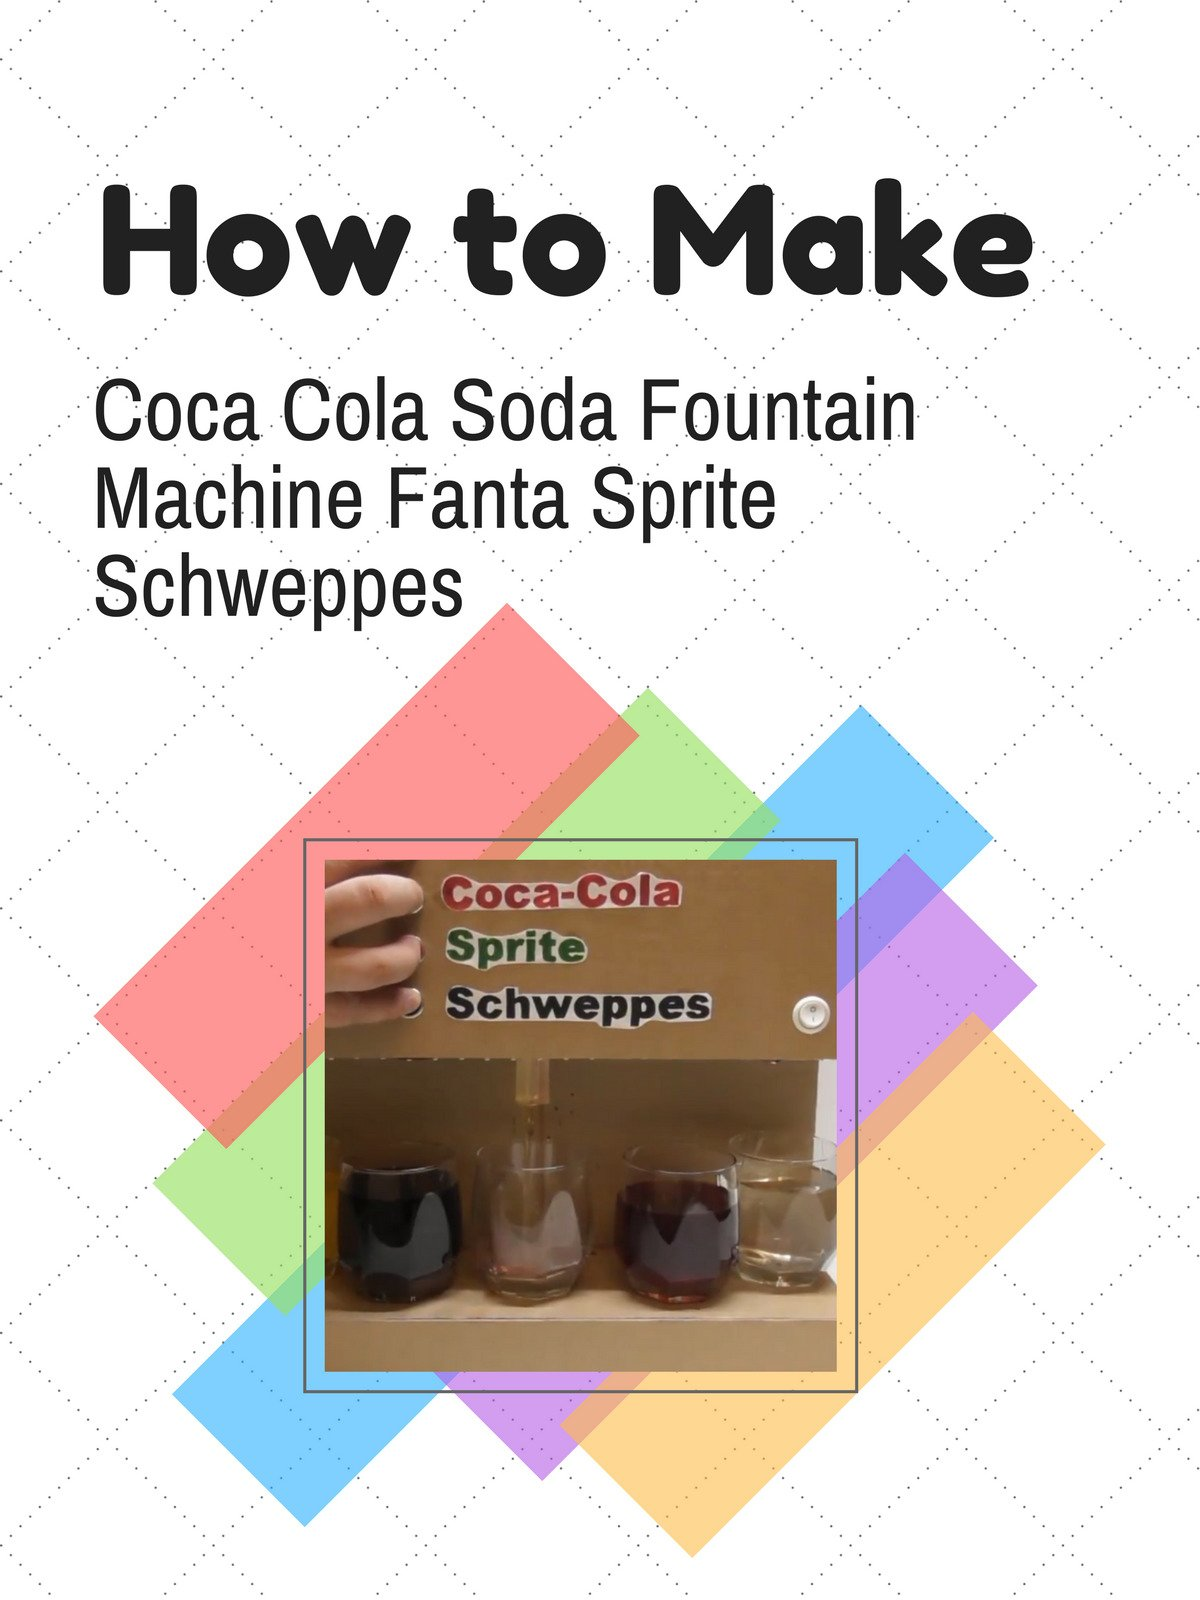 How to Make Coca Cola Soda Fountain Machine Fanta Sprite Schweppes